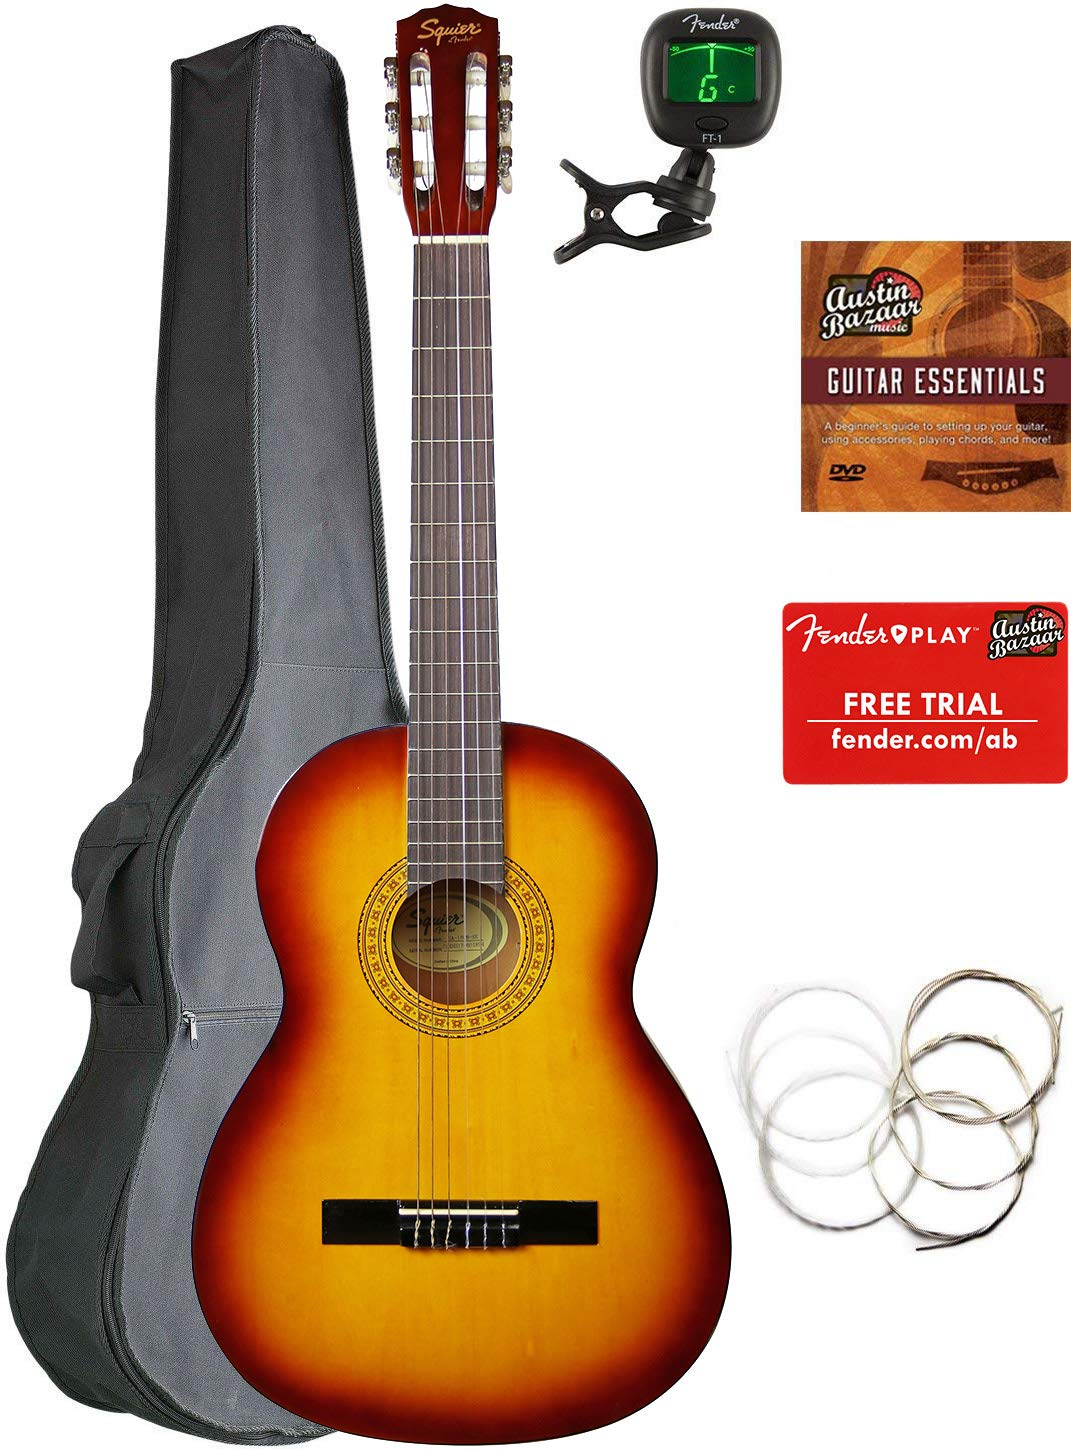 Fender Squier Classical Acoustic Guitar - Sunburst Bundle with Gig Bag, Tuner, Strings, Fender Play Online Lessons, and Austin Bazaar Instructional DVD by Fender